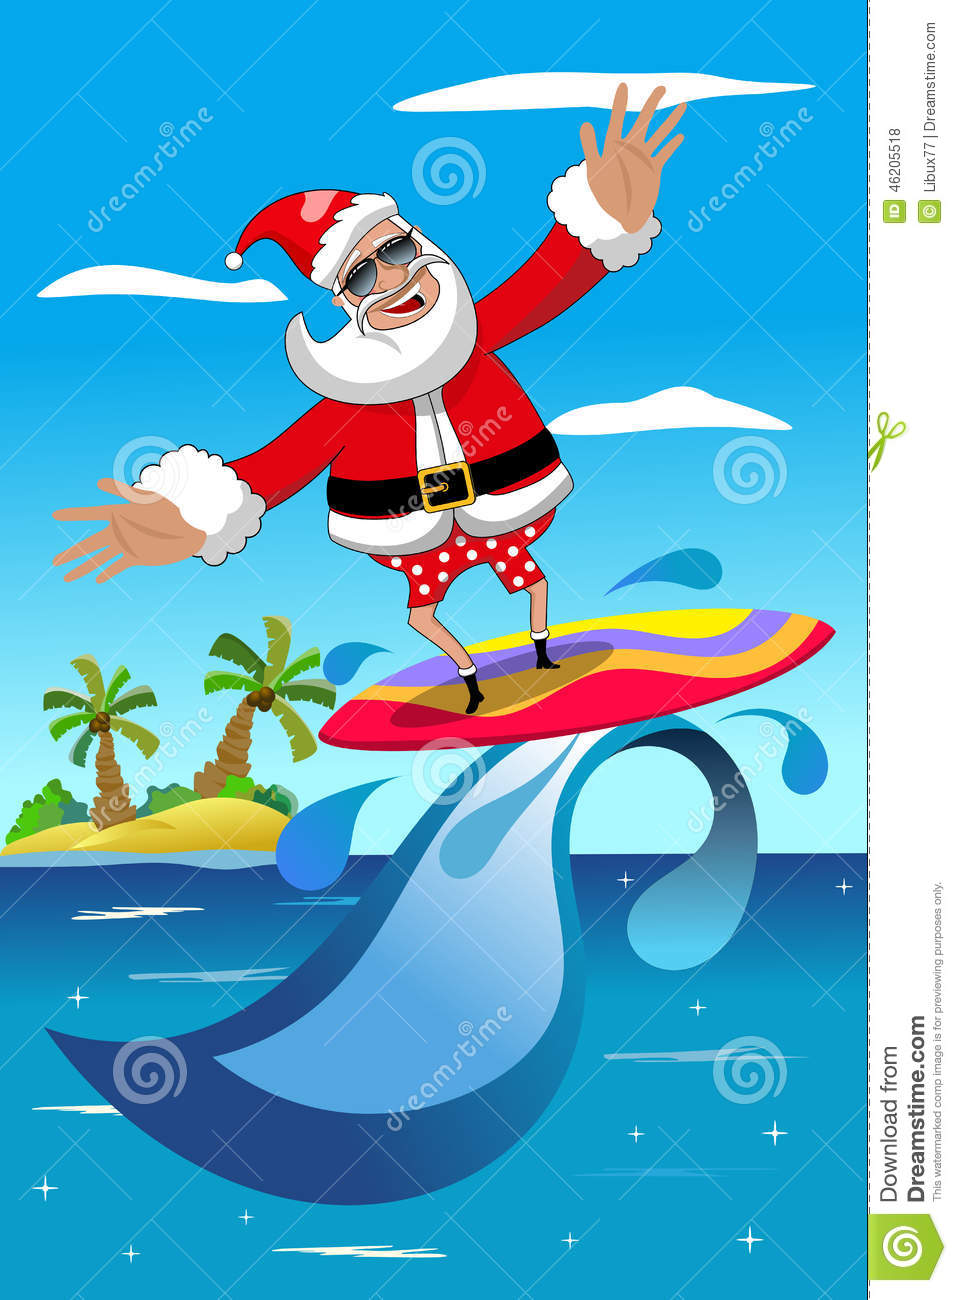 Santa on a surfboard clipart graphic free stock Christmas Santa Claus Surfing Tropical Sea Stock Illustration ... graphic free stock